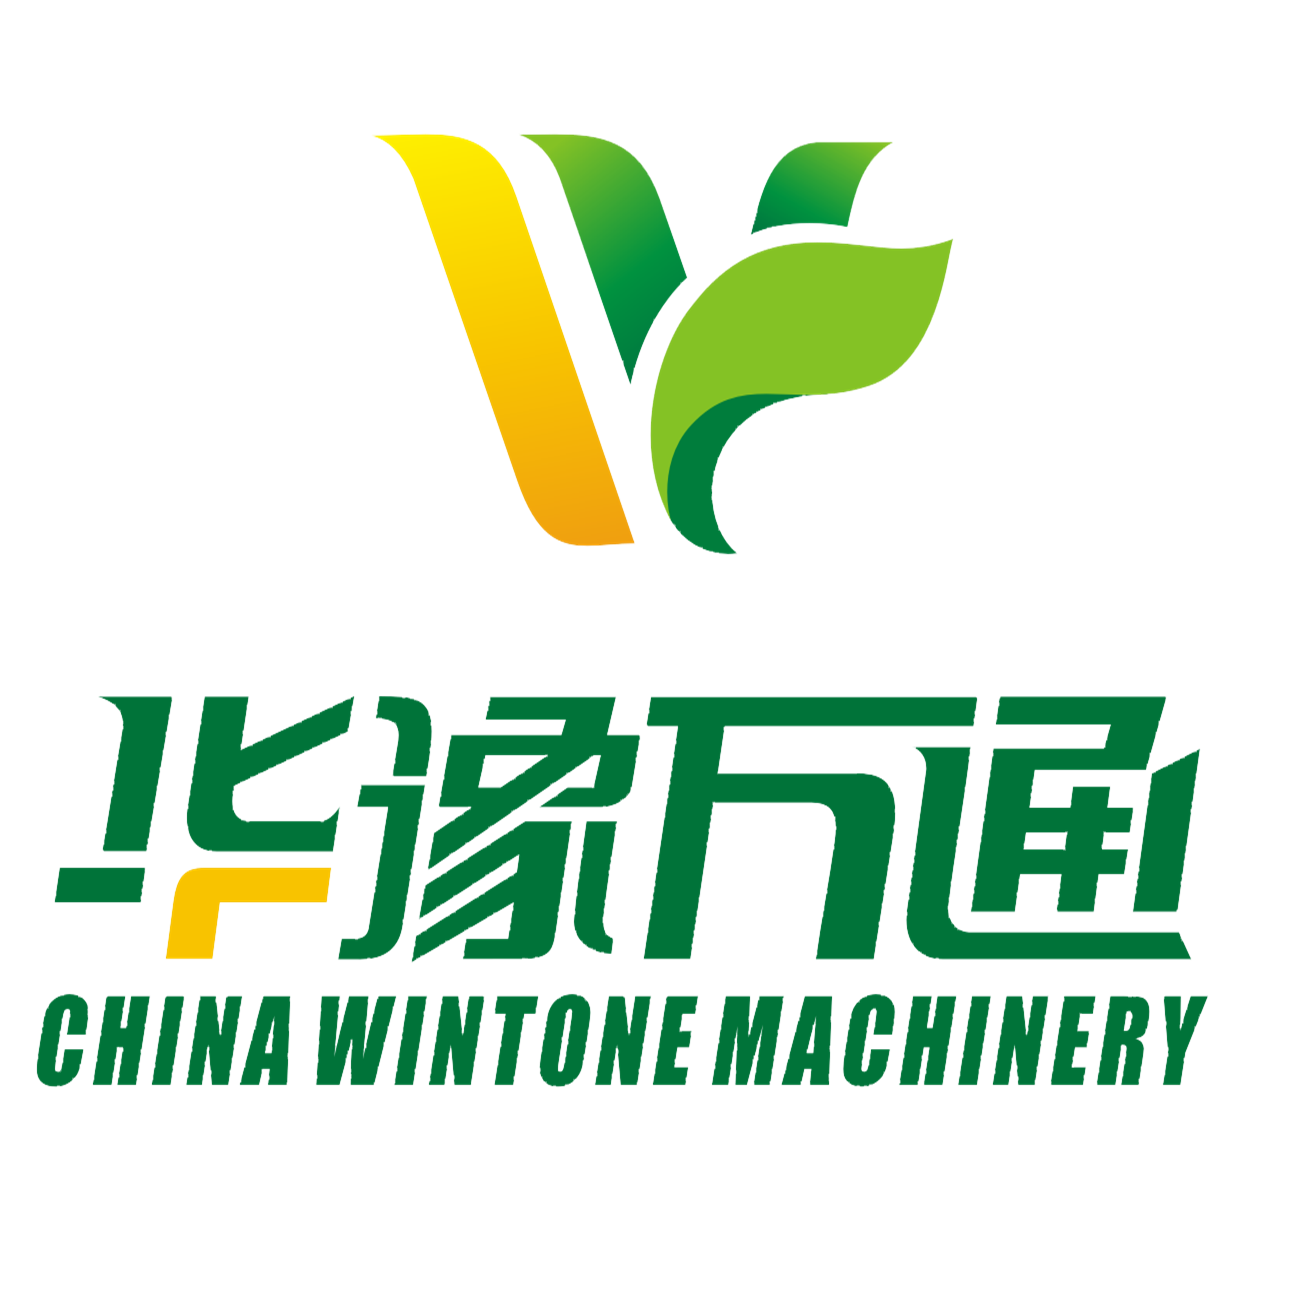 LuShan Win Tone Machinery Manufacture Co., Ltd